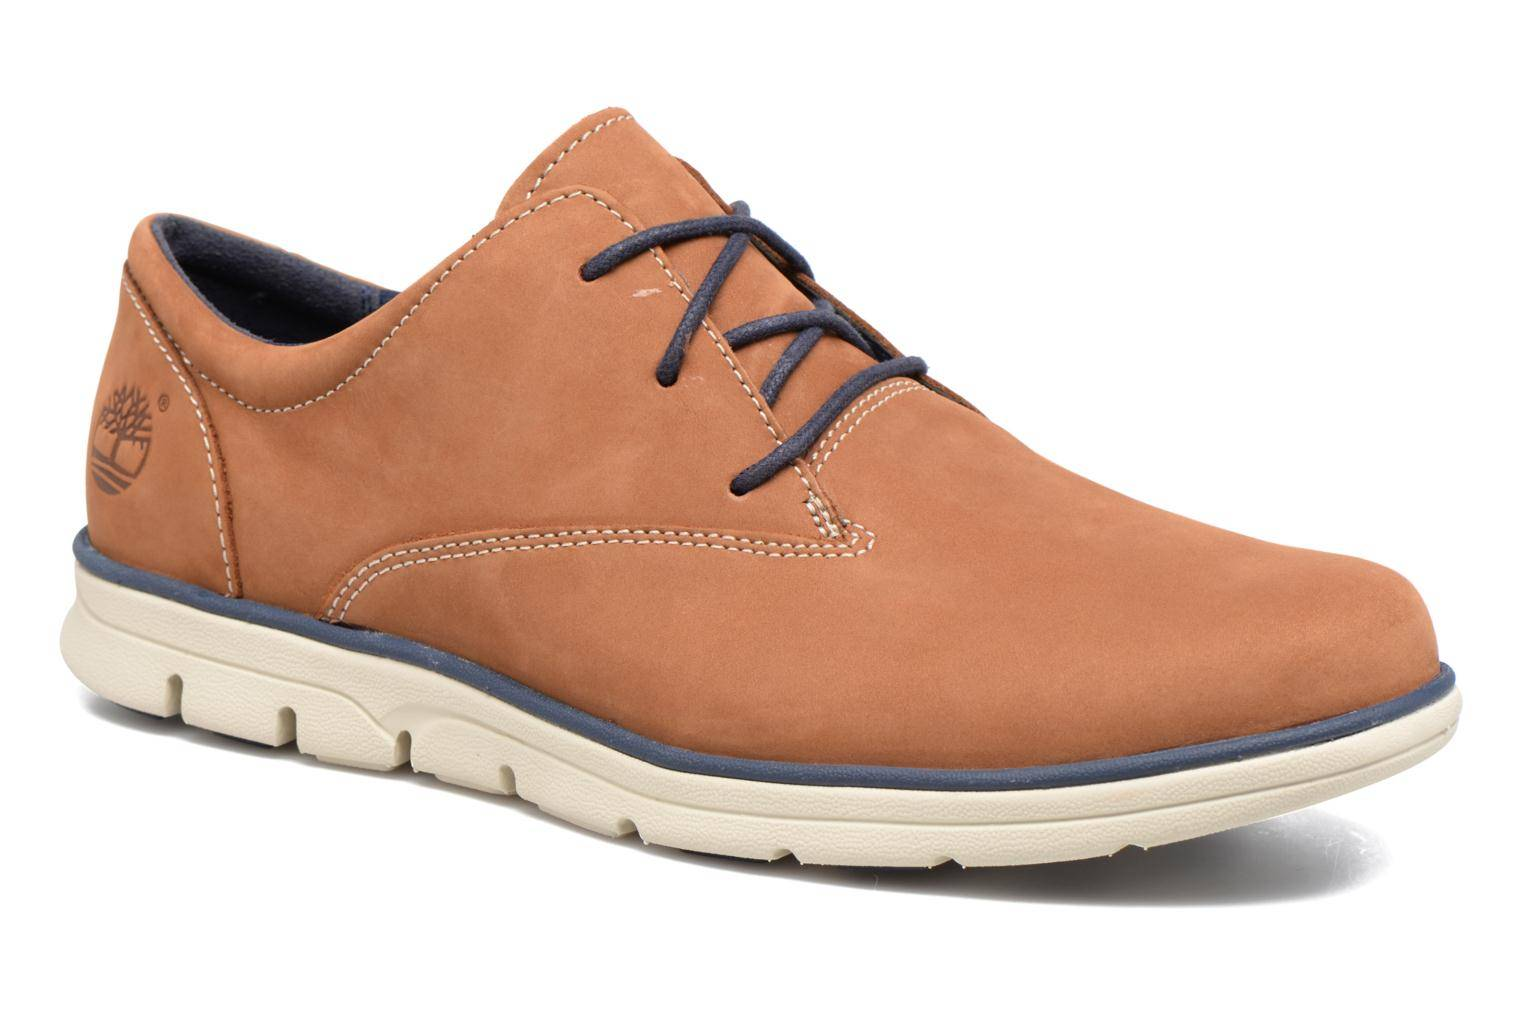 Timberland Chaussures à lacets Timberland( Homme )